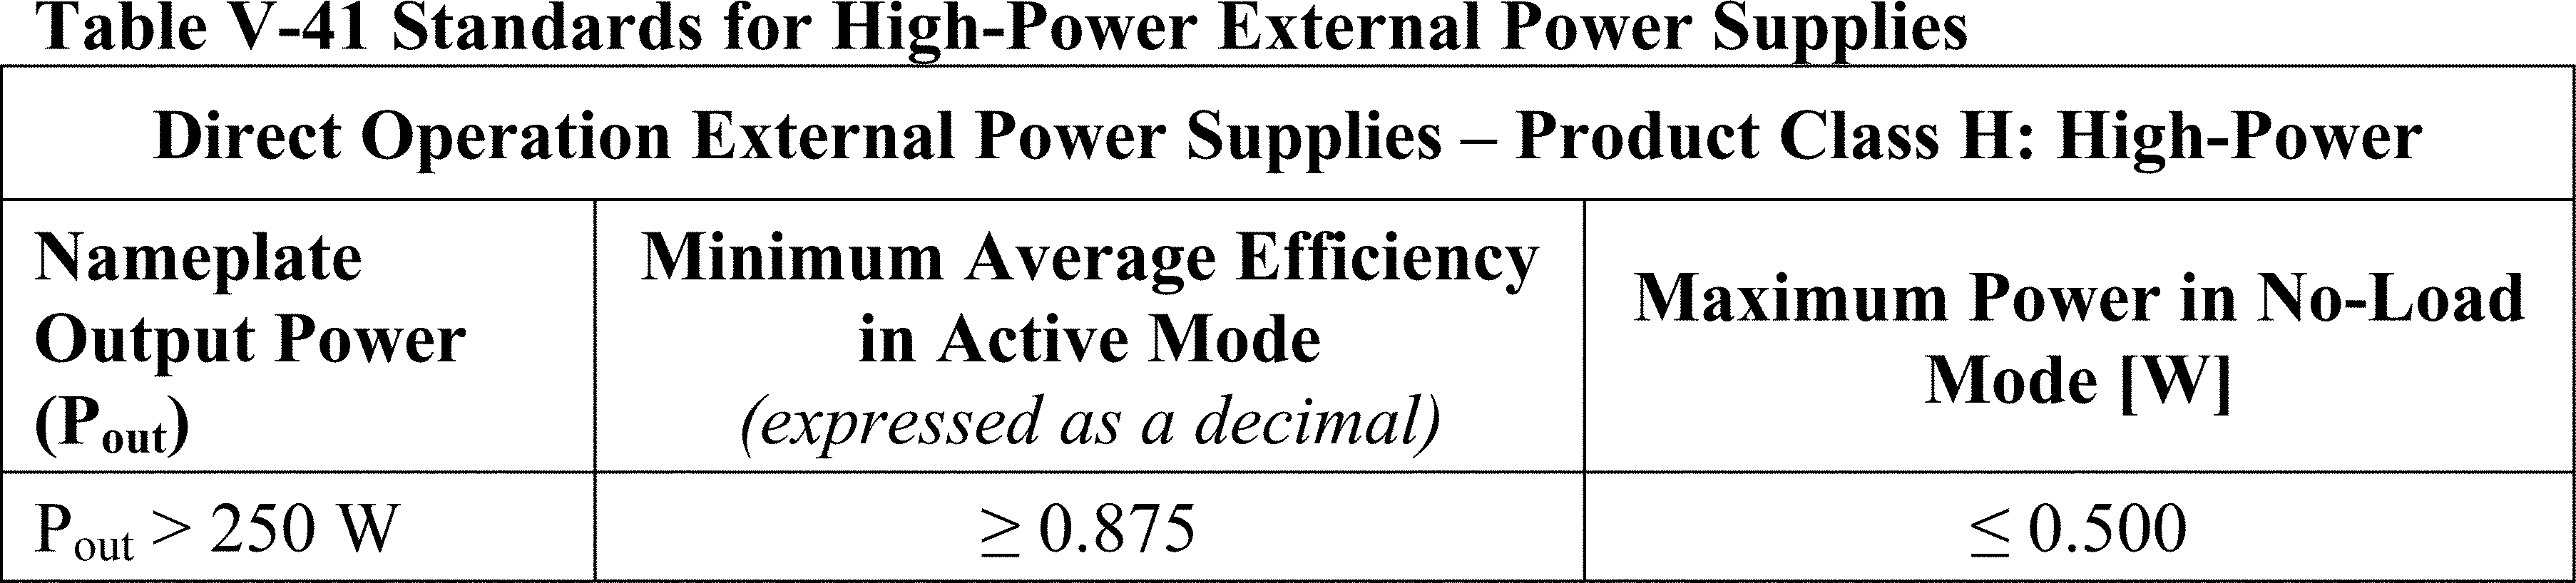 Federal Register Energy Conservation Program Depict The Power Source As A Battery But It Is Supply Standards For These Epss Expressed Minimum Average Active Mode Efficiency Value And Maximum No Load Input Are Shown In Table V 41